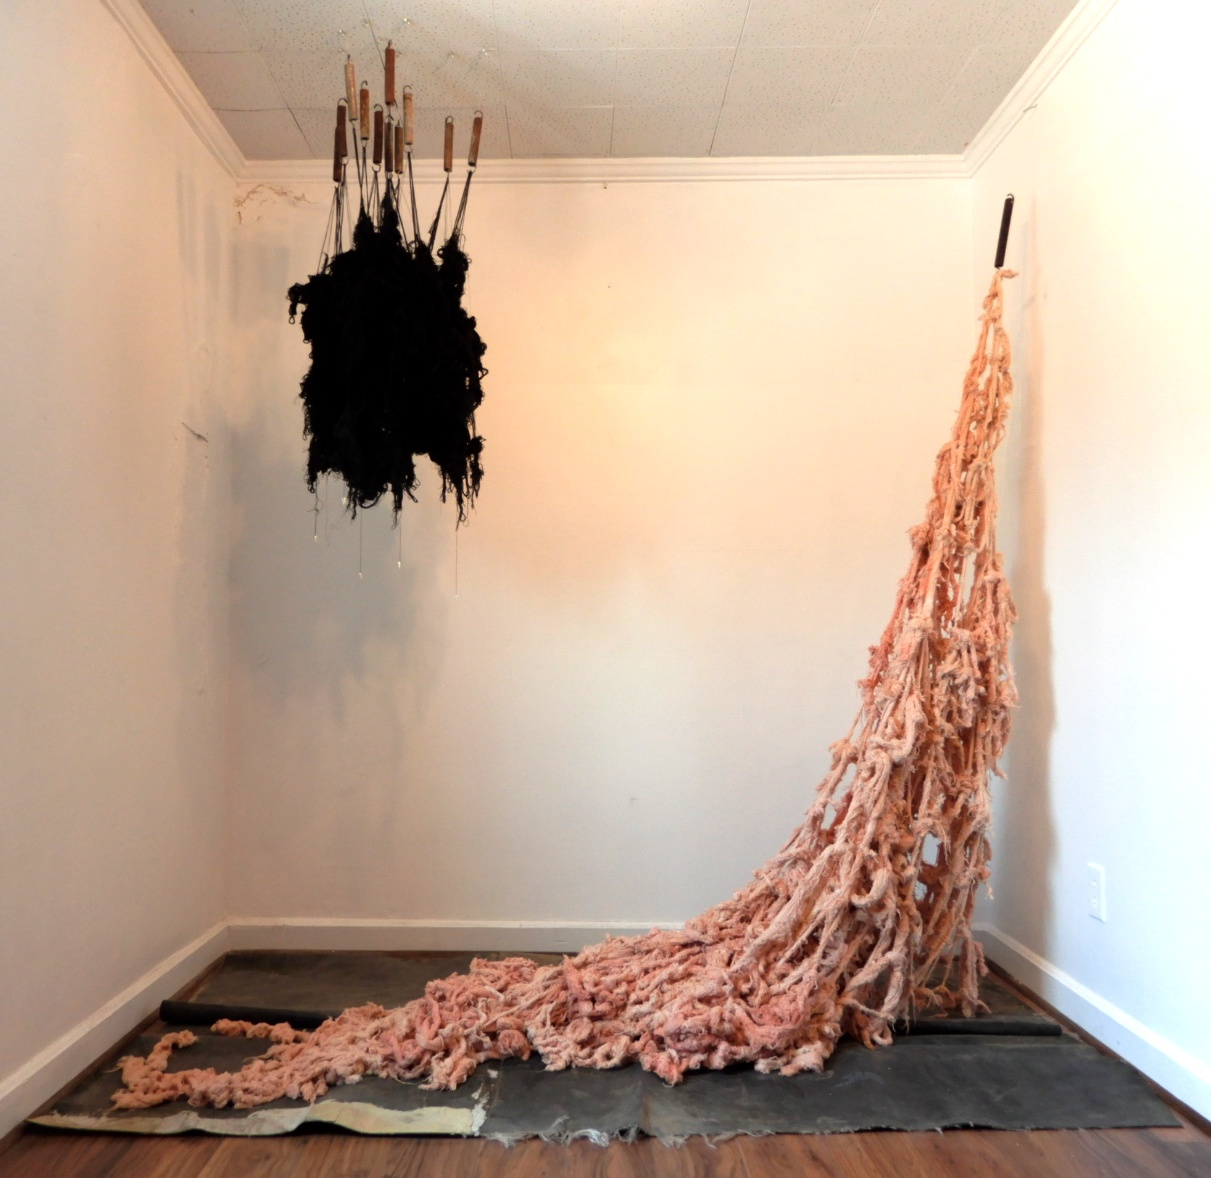 Installation art: A large clump of black fibre hangs from the ceiling and another fibre tangly mess hangs from the wall and drapes on the floor